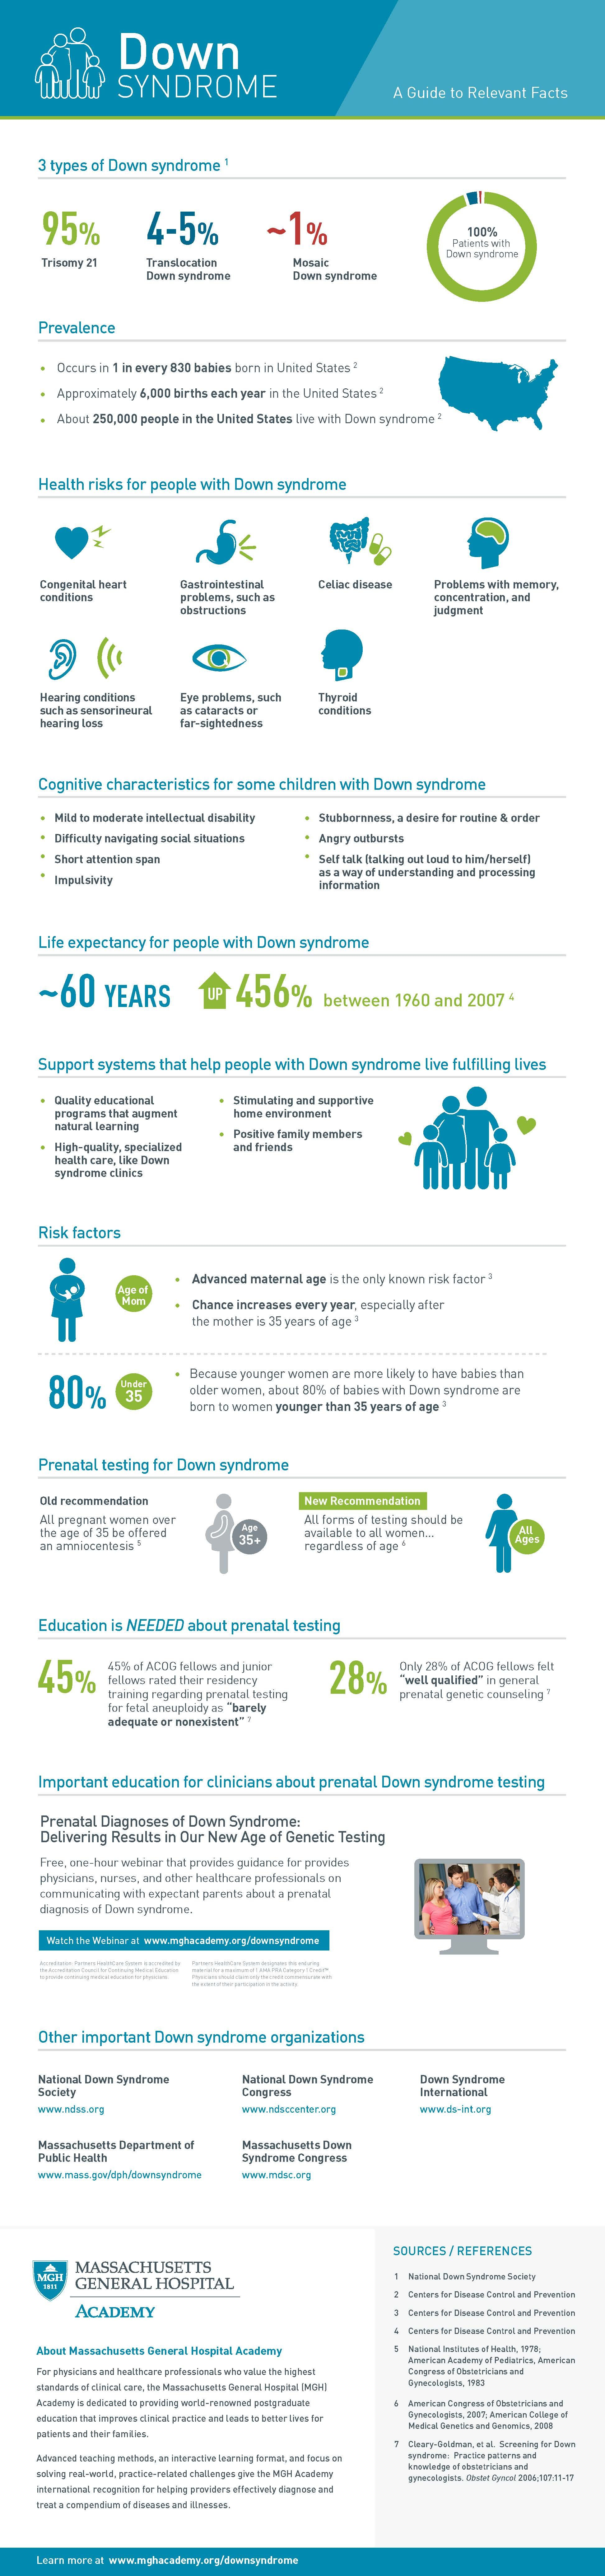 Down Syndrome Facts Figures and Education #DownSyndrome # ...